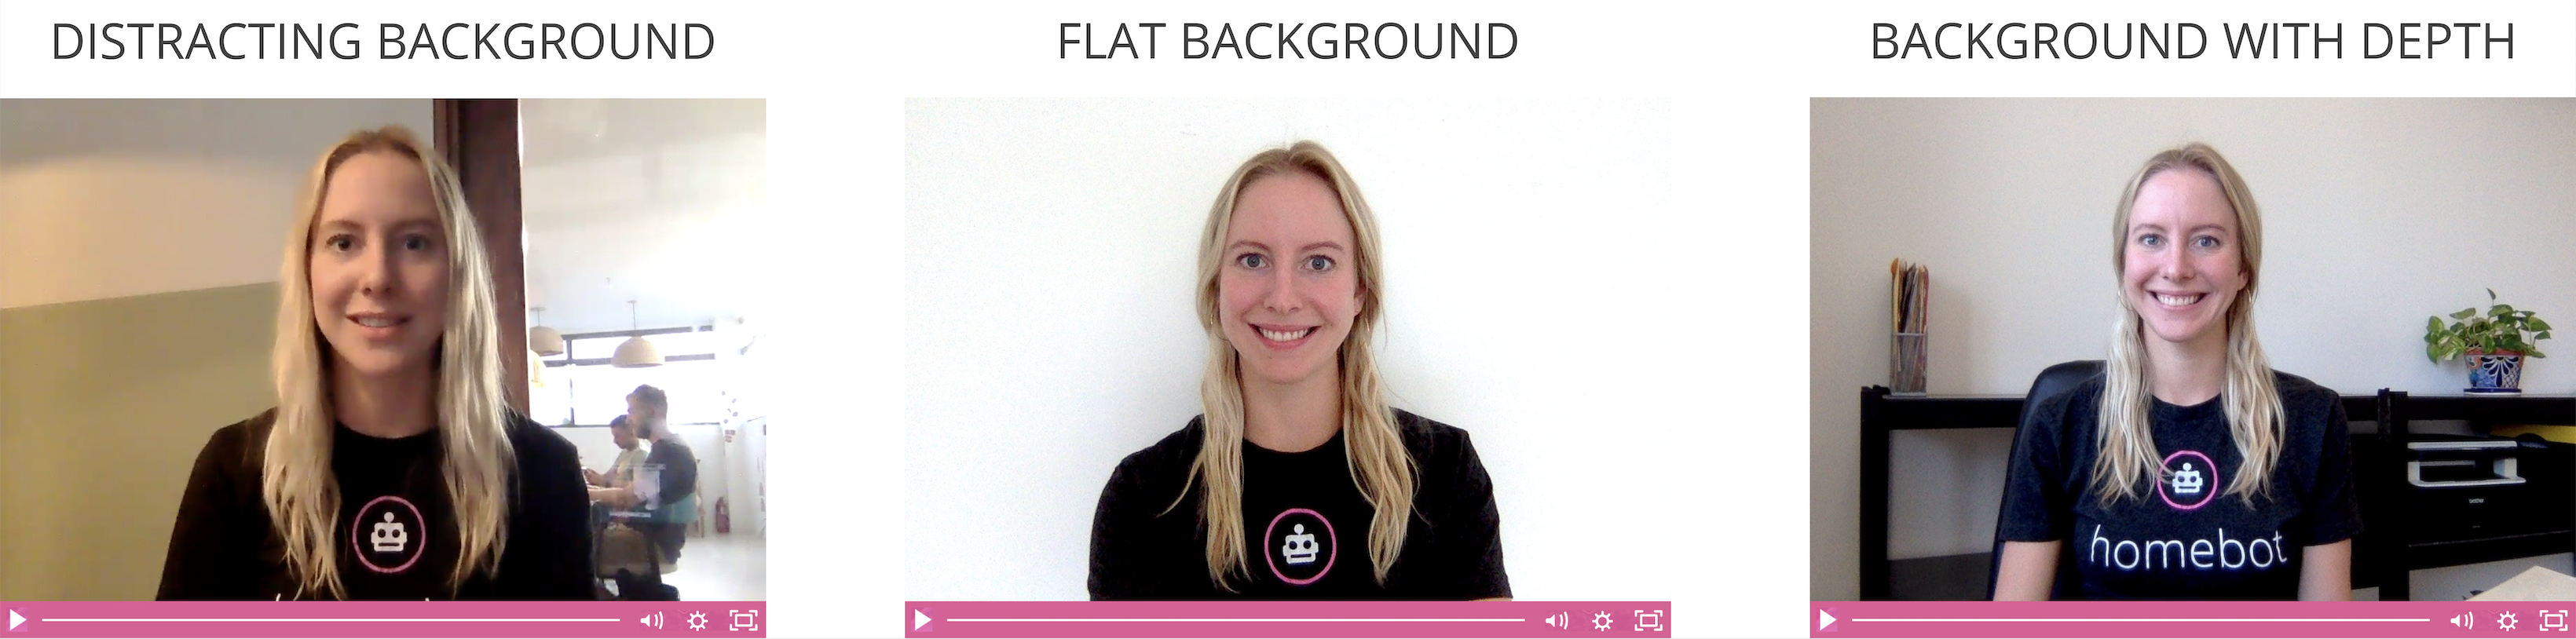 video marketing tips - updating your background